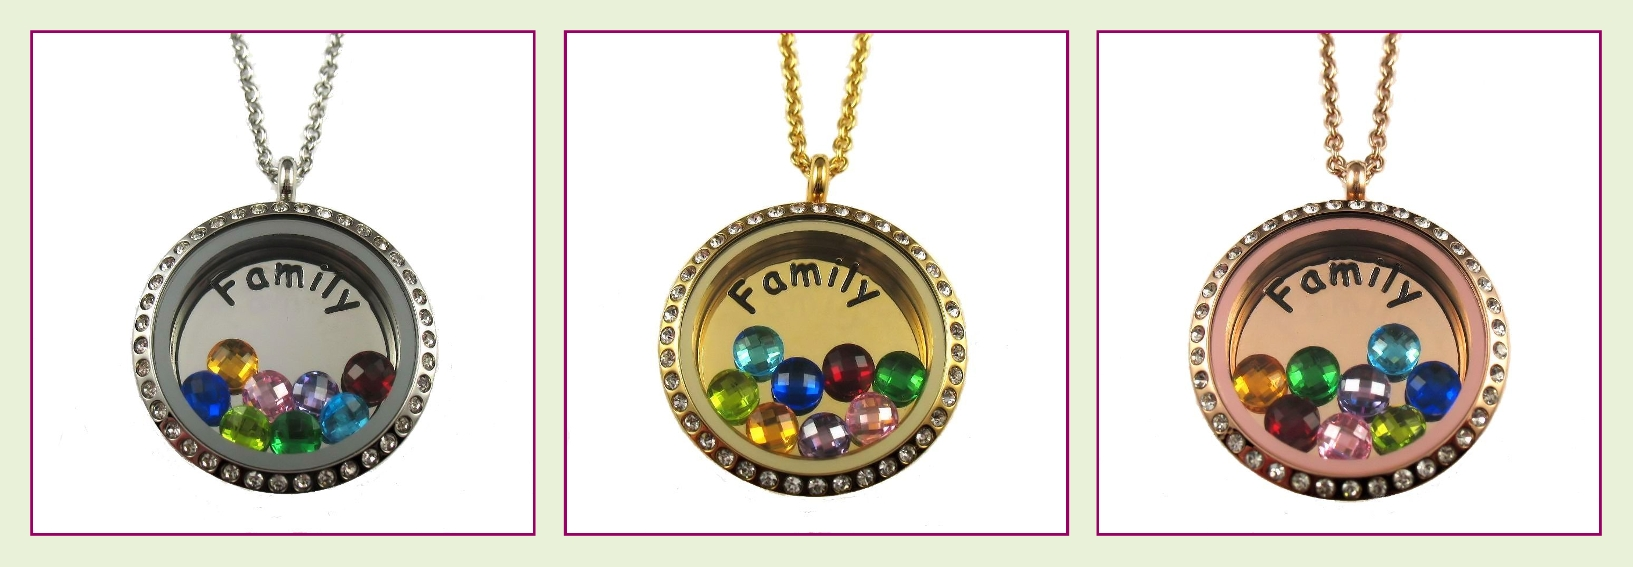 cardinals locket season football charm lockets product collection floating il fullxfull arizona style clear